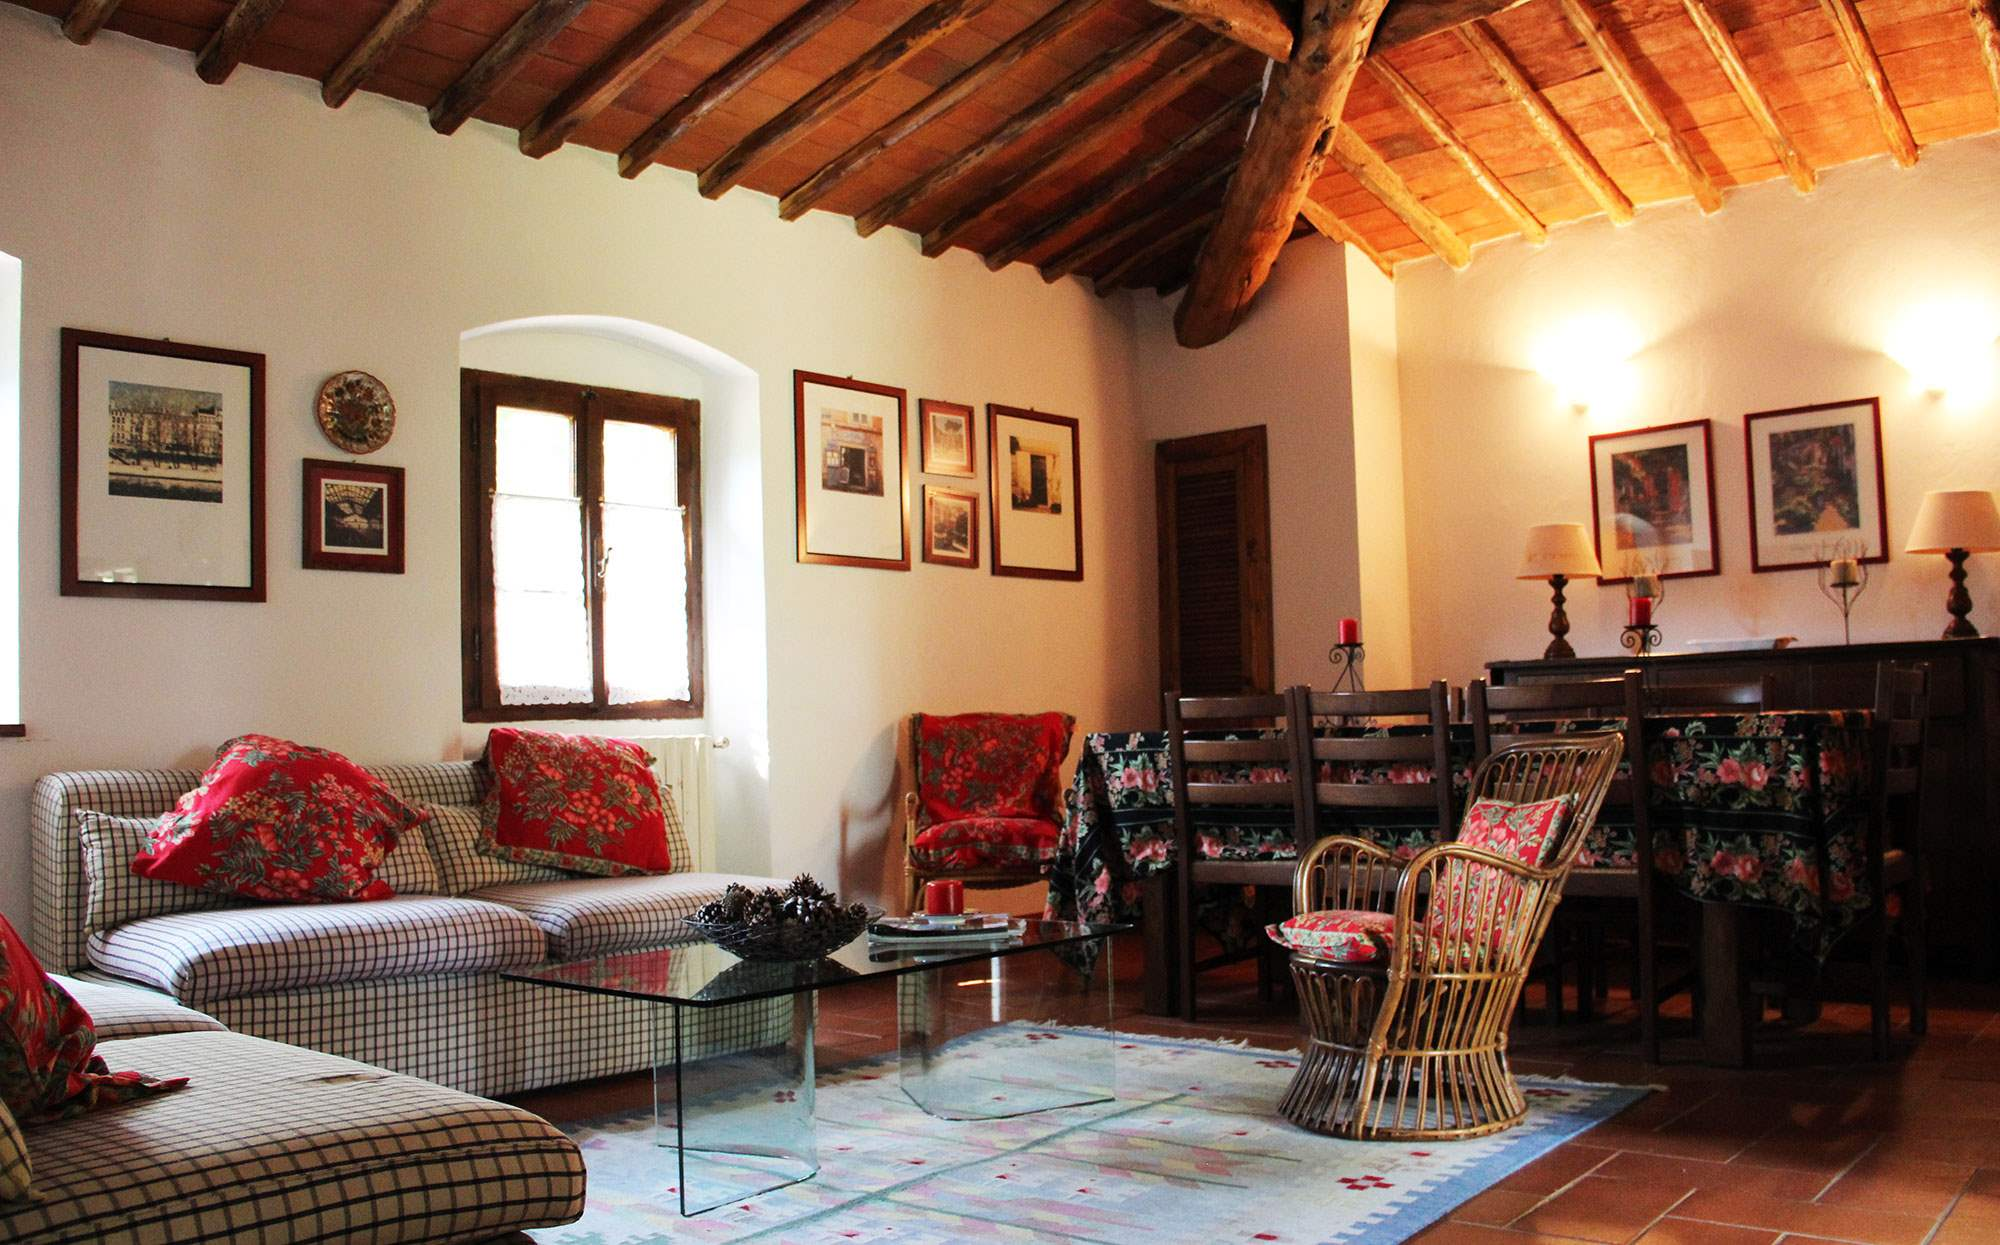 Villa Felicita, Main house and apartment, 10 persons rate, 5 bedroom villa in Chianti & Countryside, Tuscany Photo #25